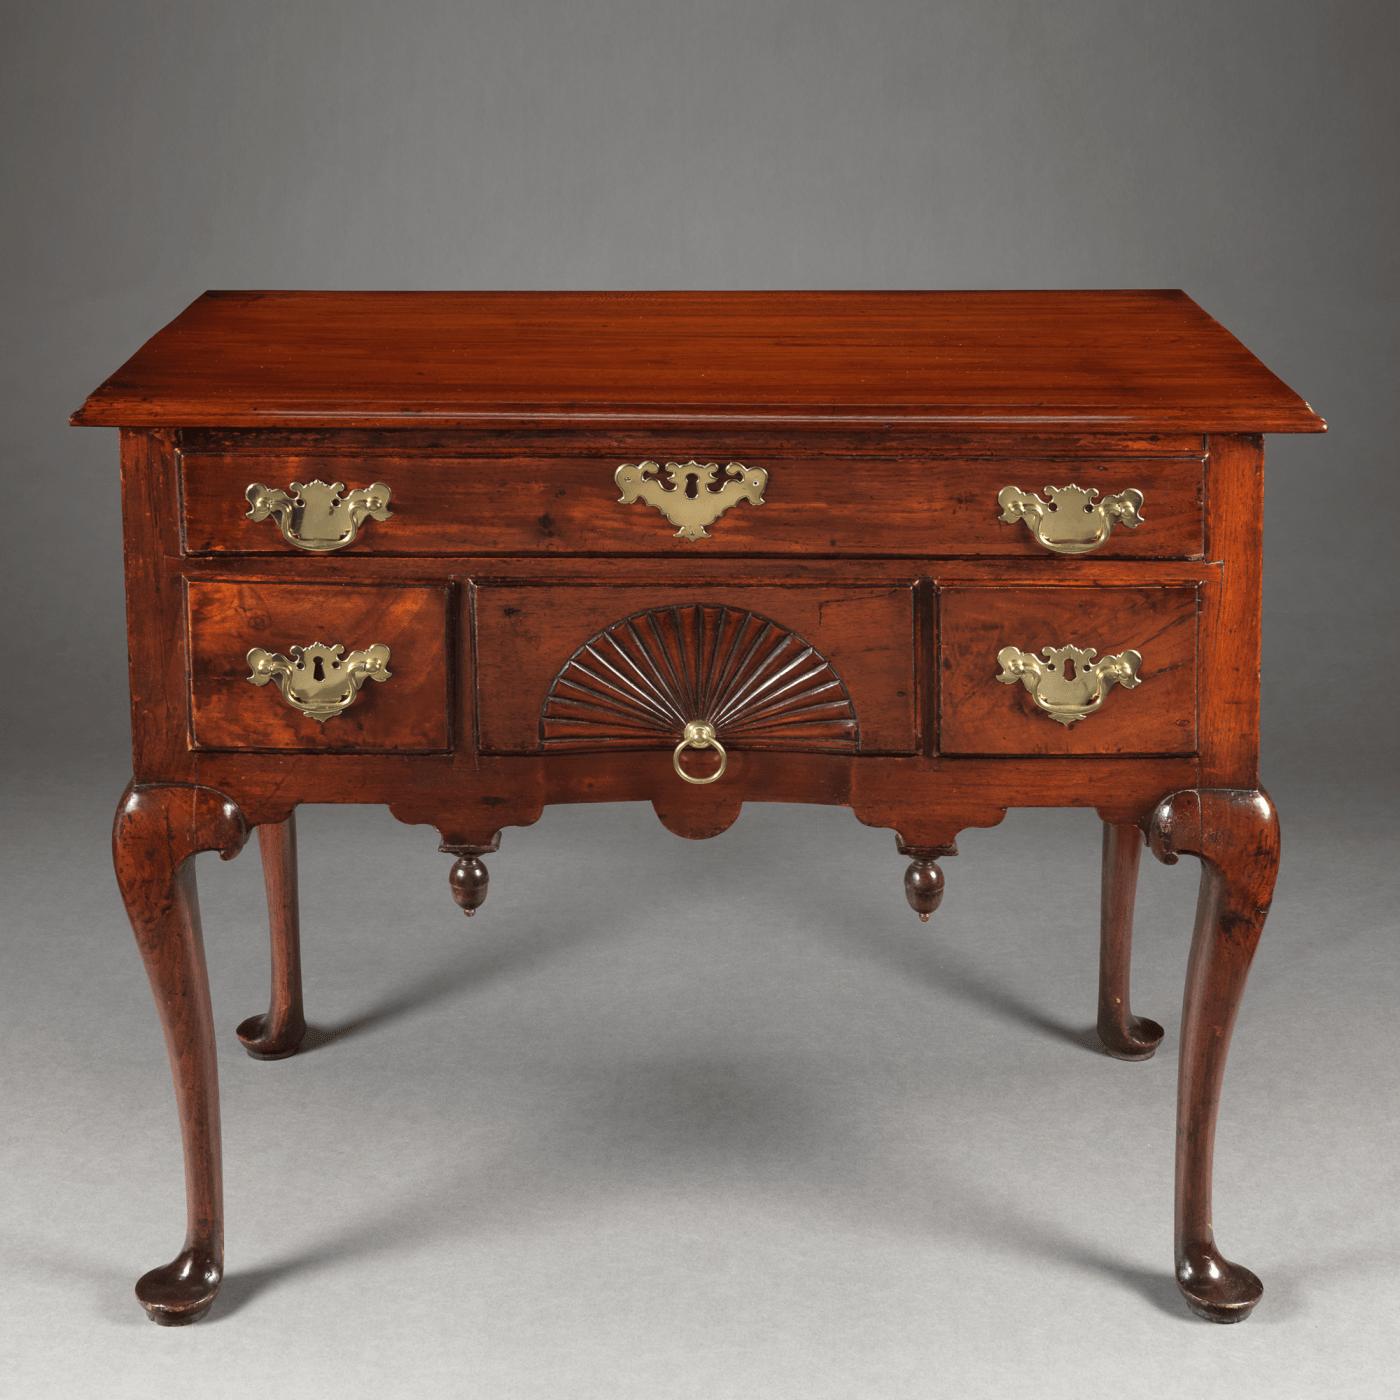 Lowboy Furniture Queen Anne Lowboy With A Carved Fan Drawer